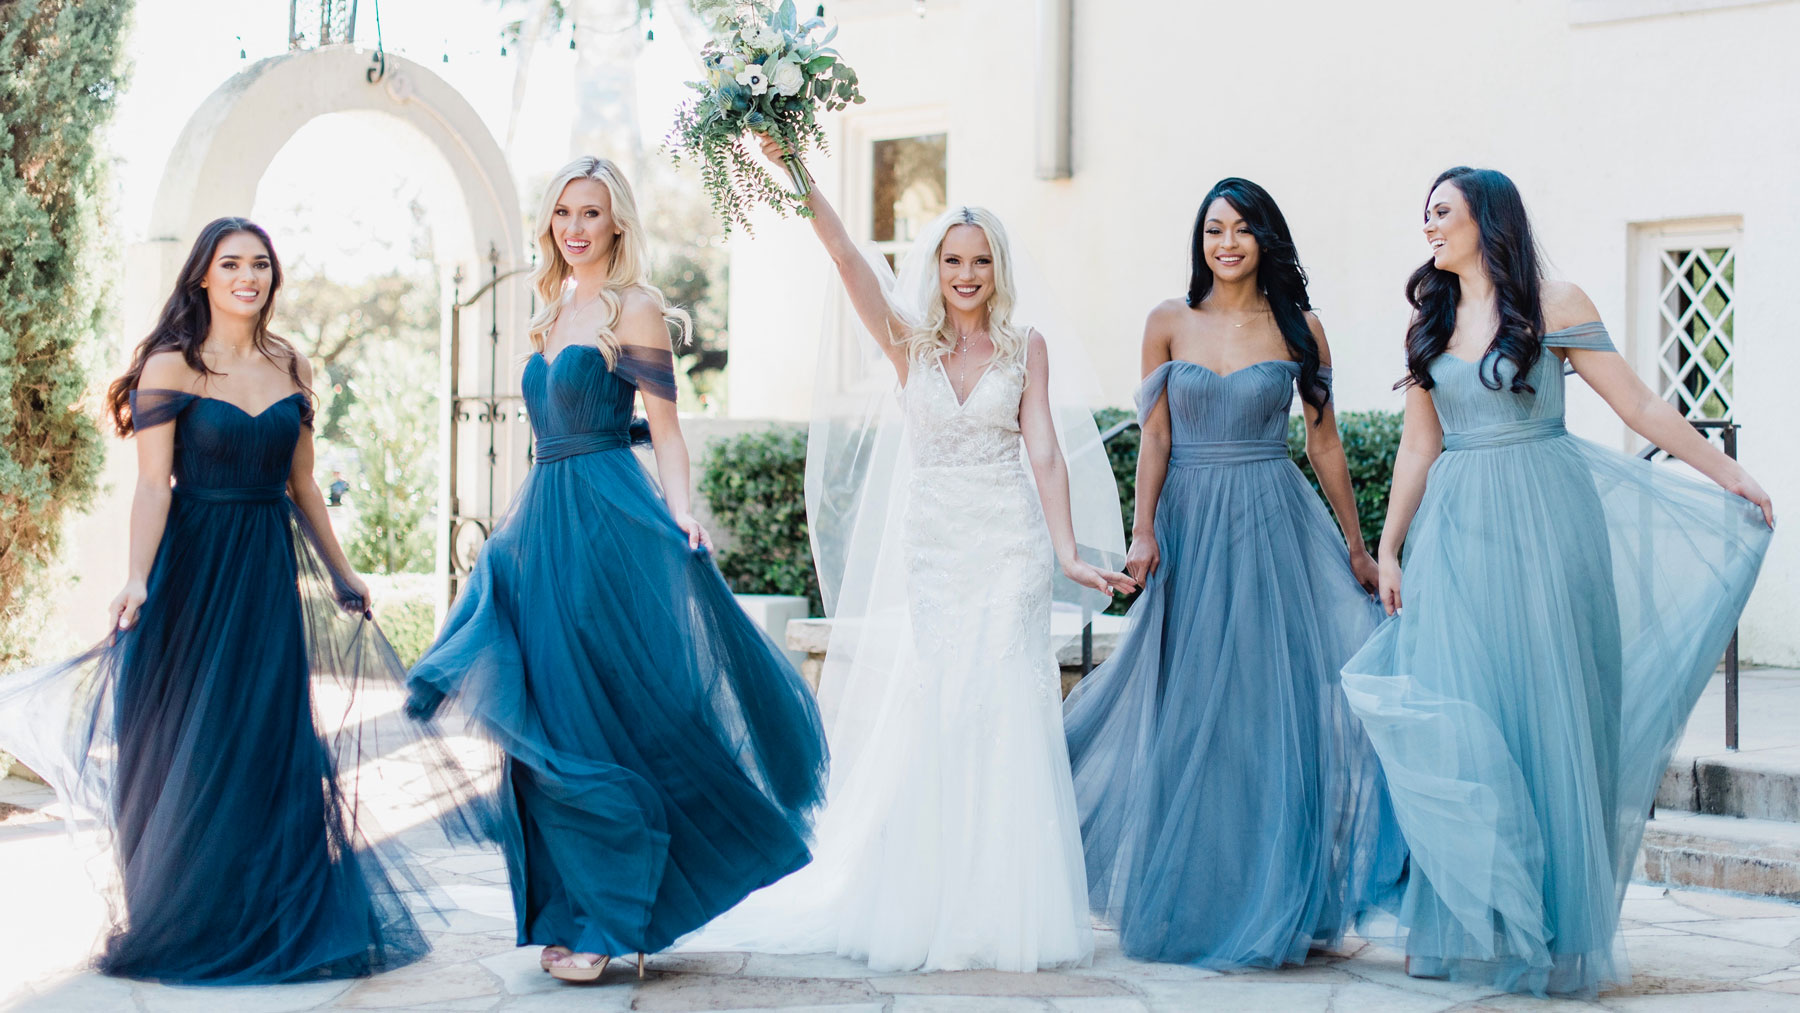 Meet Our Cbb: Teal Wedding Dresses S At Websimilar.org